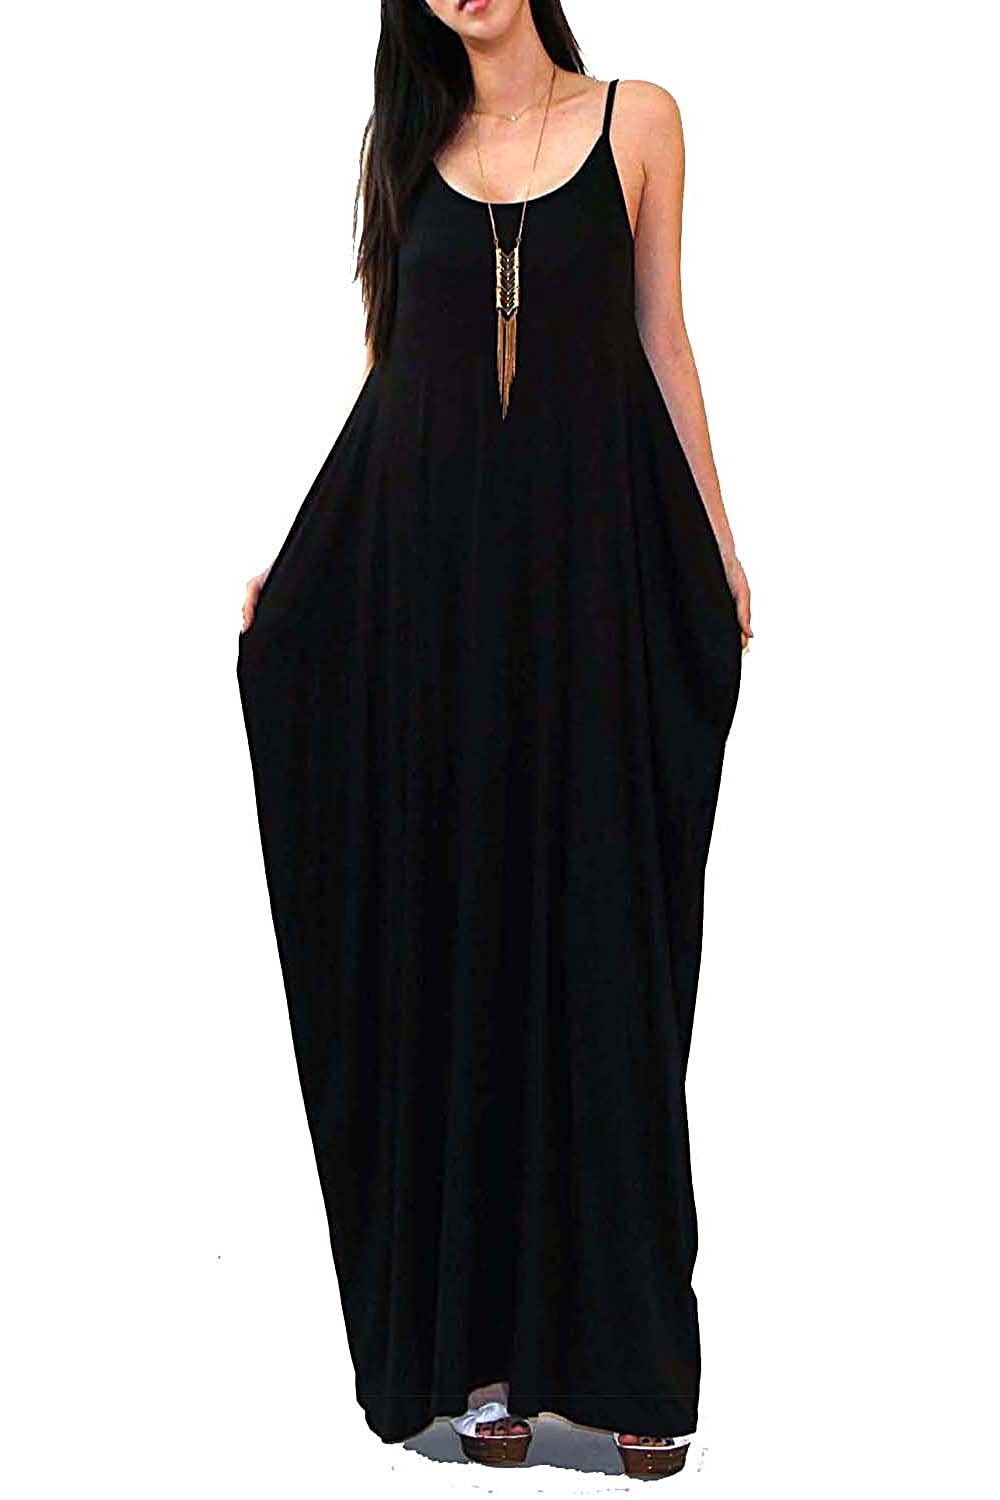 452af9a226 Women's Clothing, Dresses, Casual, Batwing Oversized Loose Plain Summer  Sleeveless Pocket Long Maxi Dress - Black - CY12F1JDITV #fashion #style # clothes ...